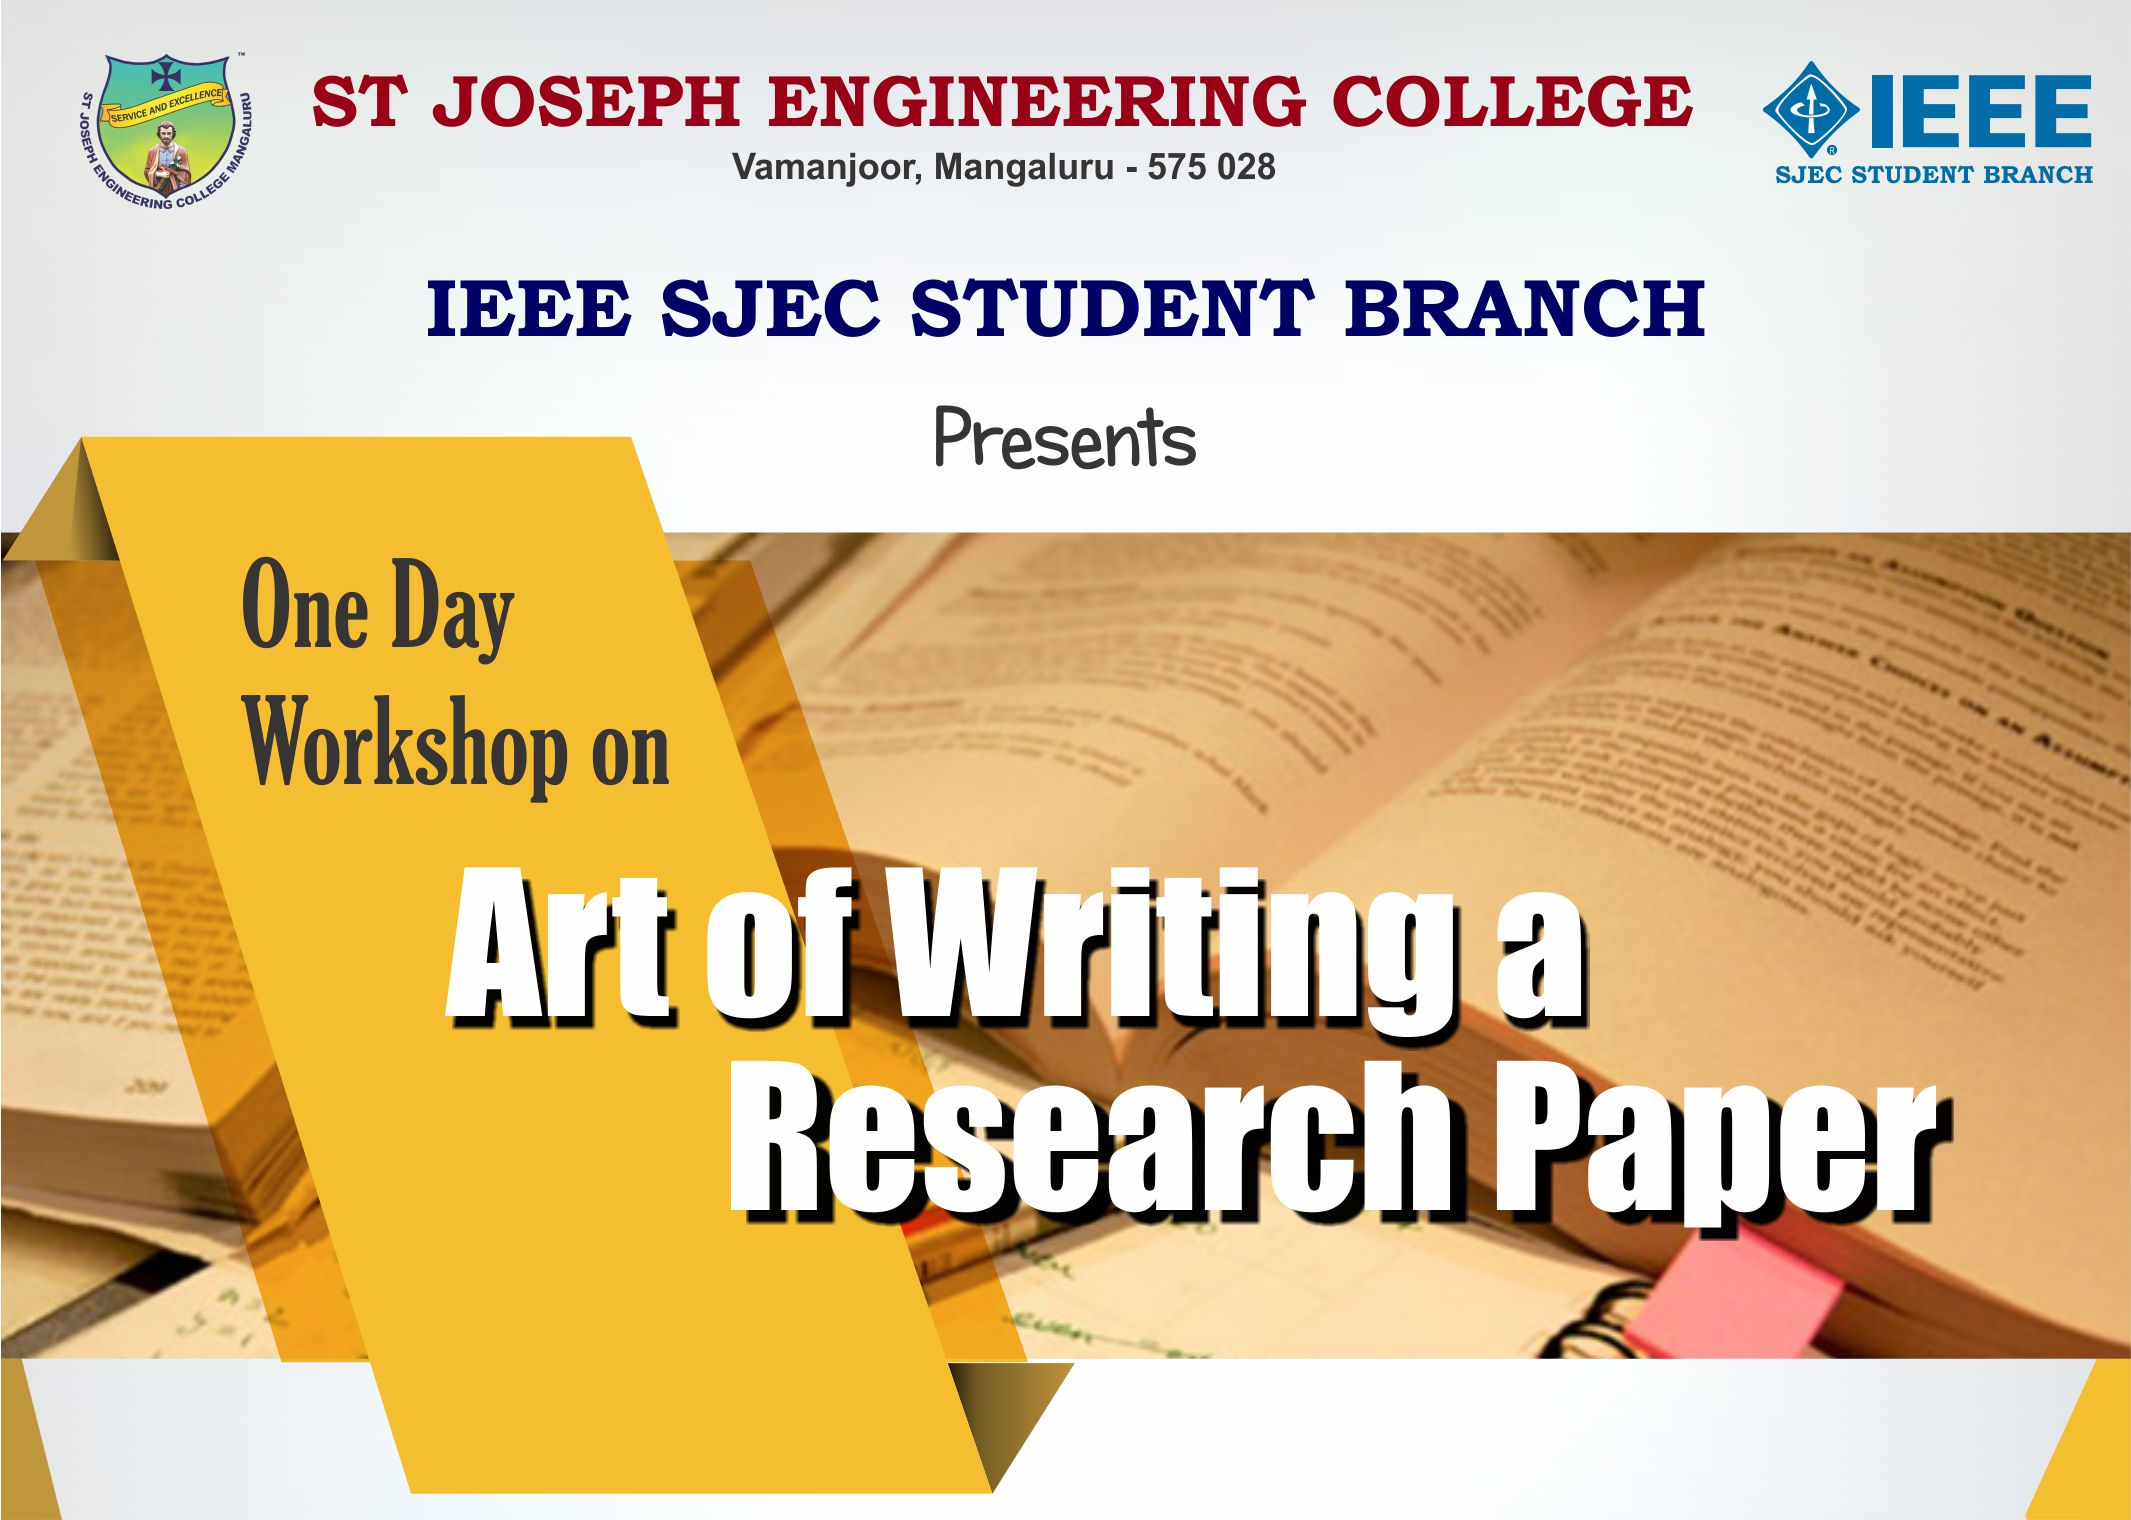 017 Computer Science Research Papers Paper Workshop Awful 2018 Latest In Full